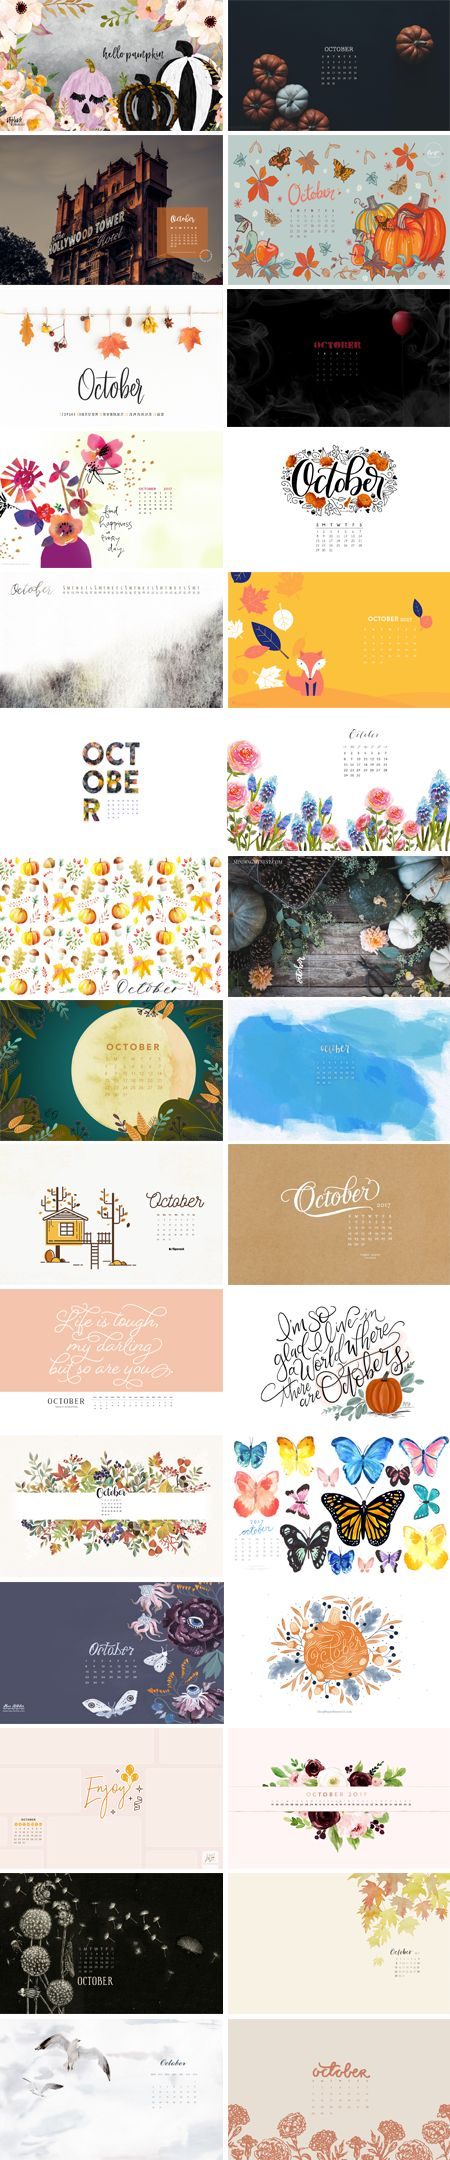 October 2017 – Wallpaper Round-Up